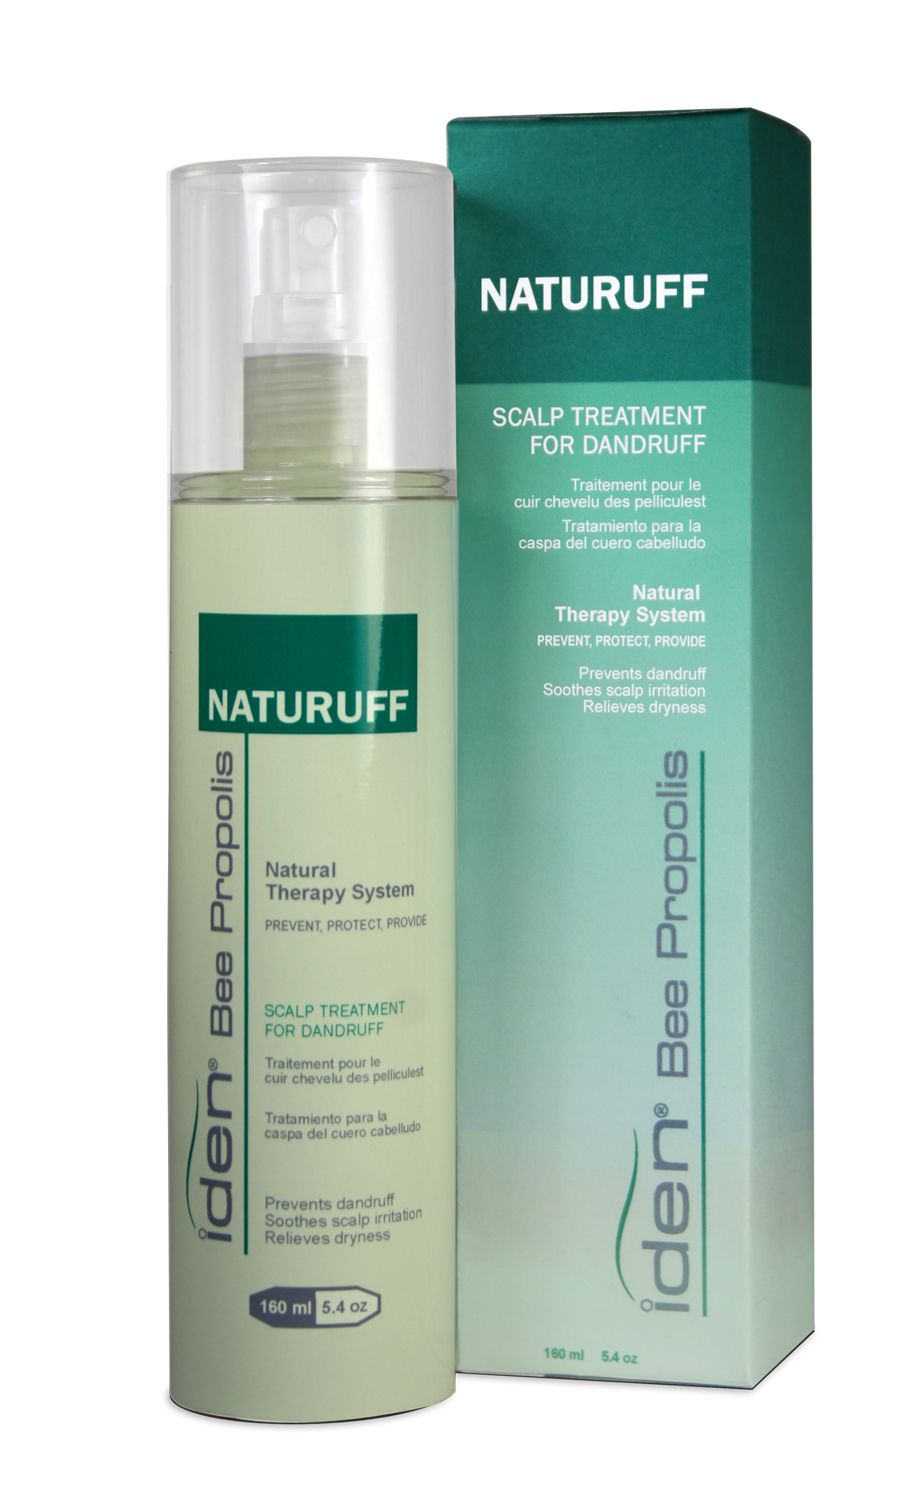 NATURUFF -Leave-in scalp treatment for dandruff BENEFITS +